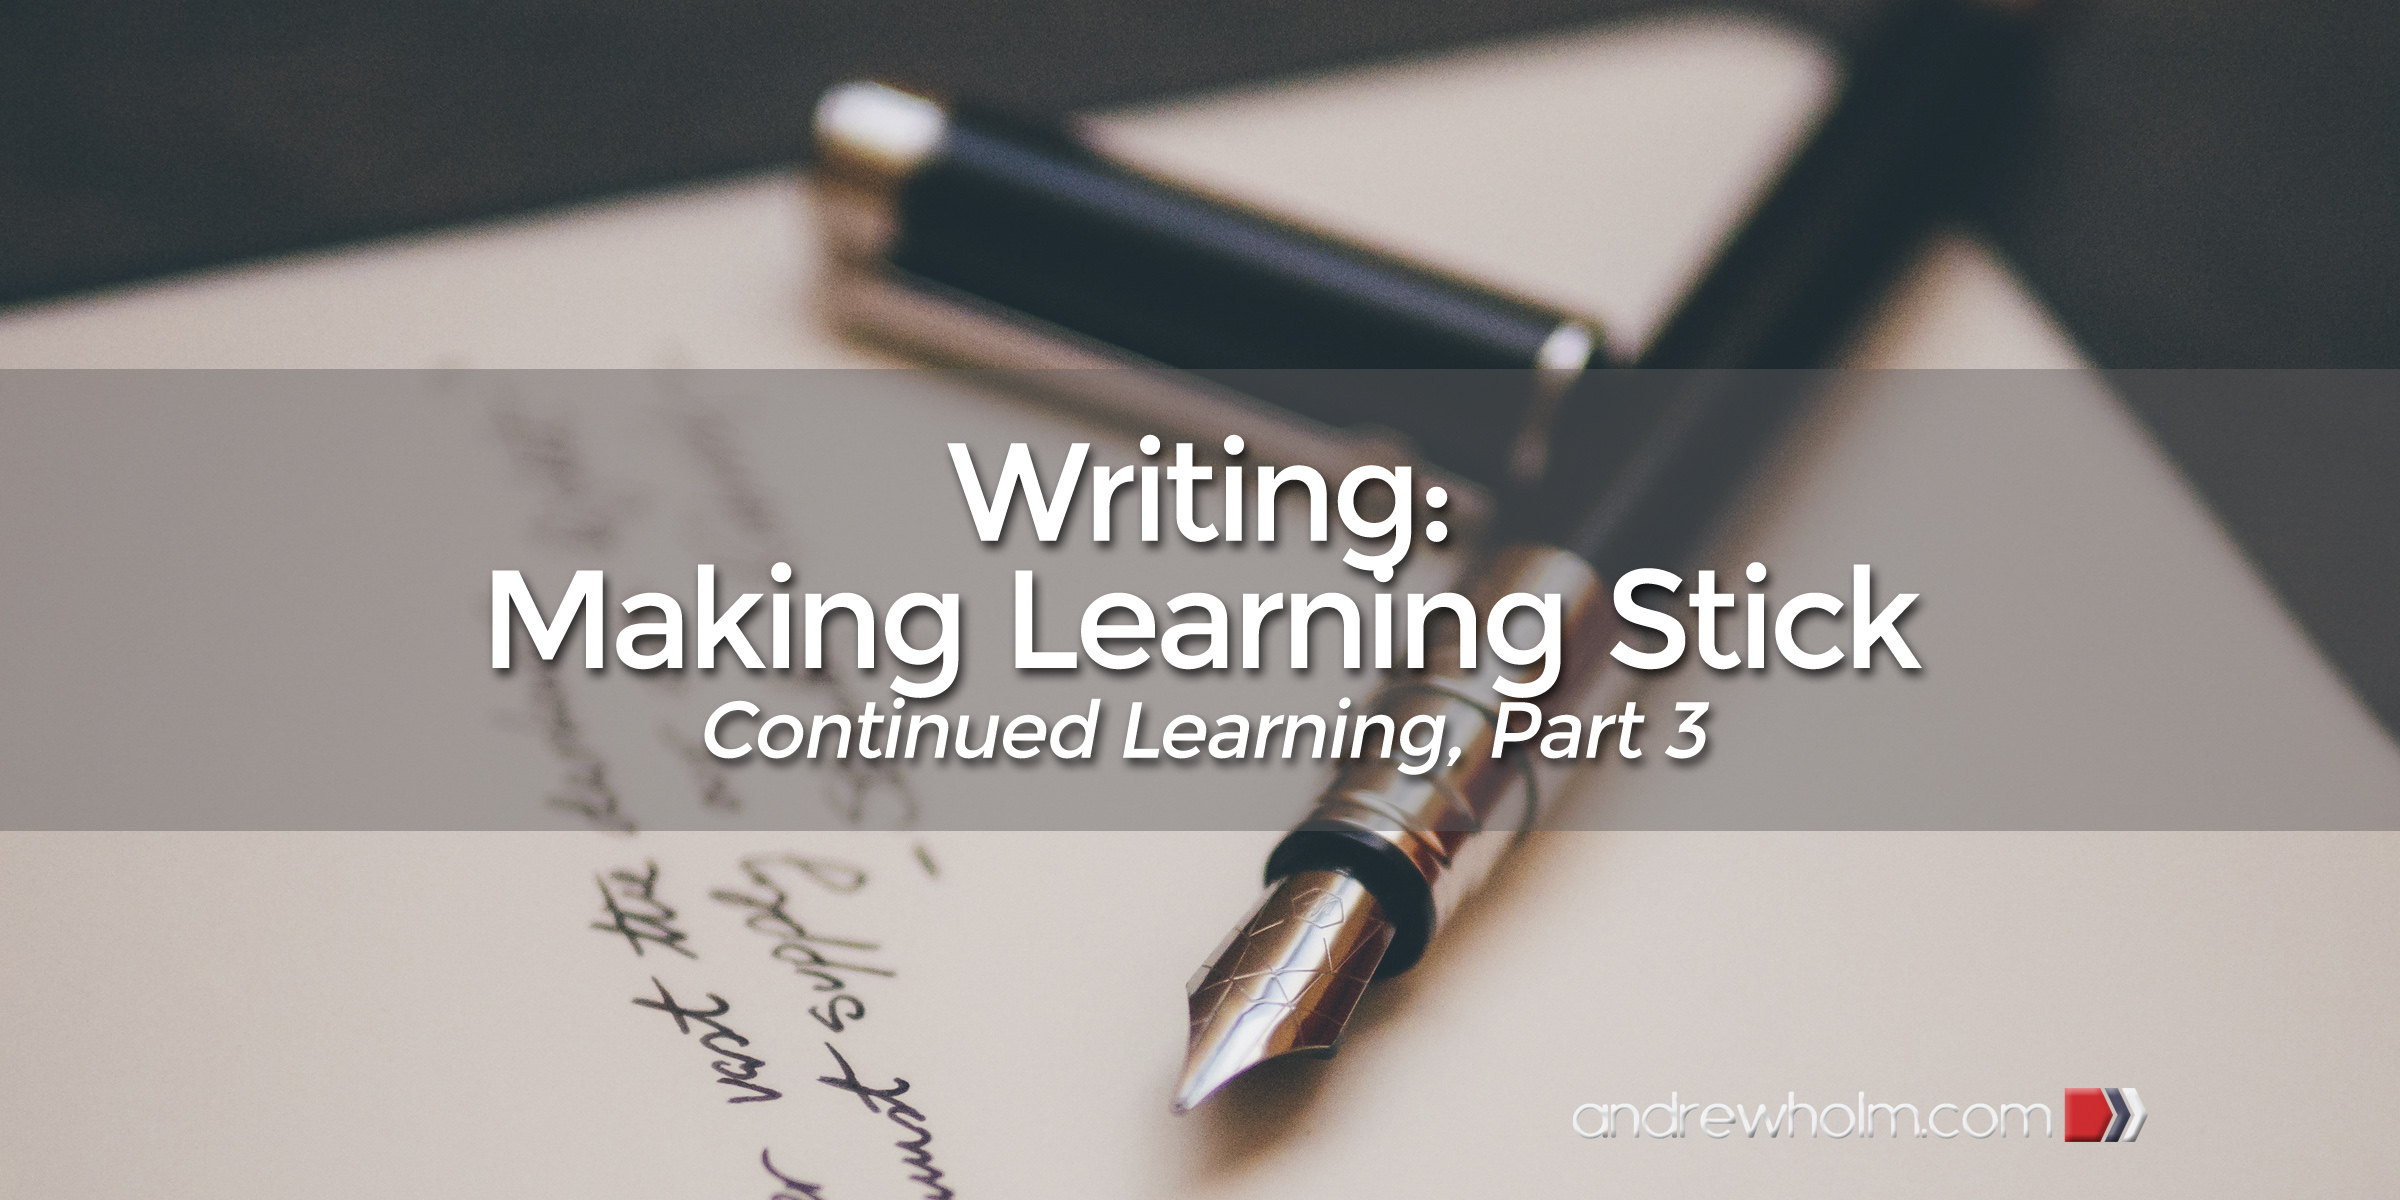 Writing: Making Learning Stick